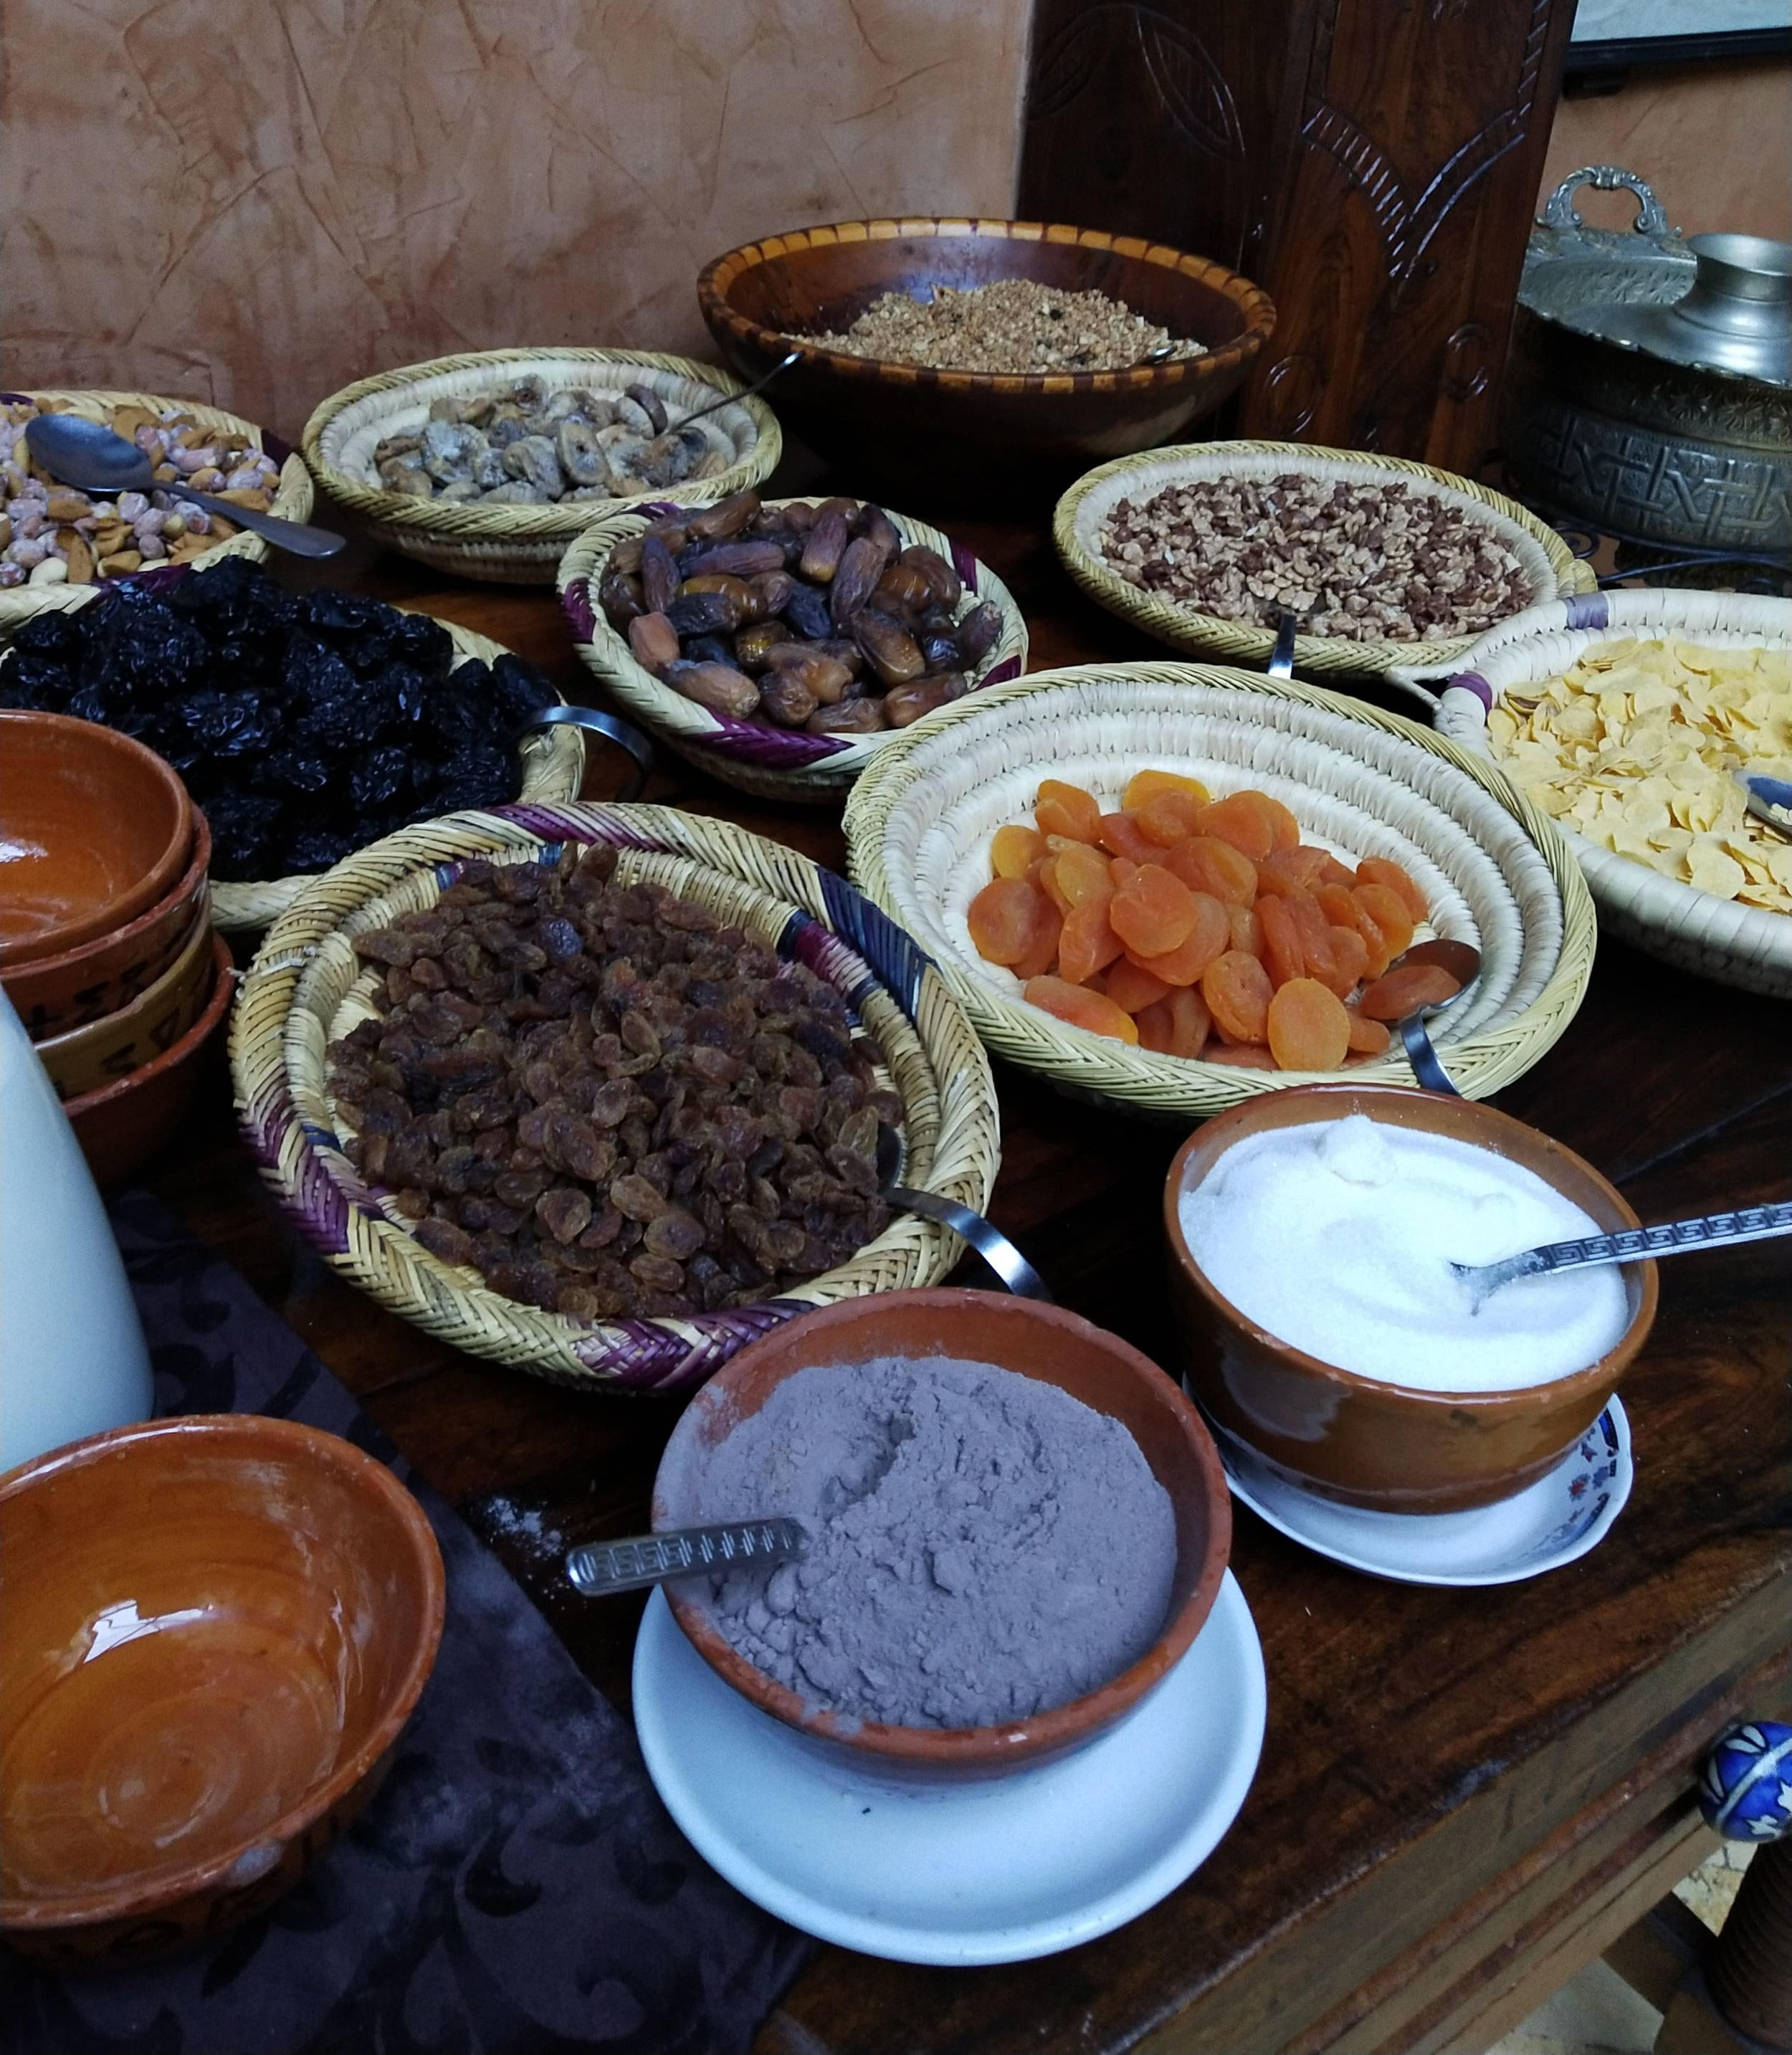 Breakfast at Kasbah du toubkal